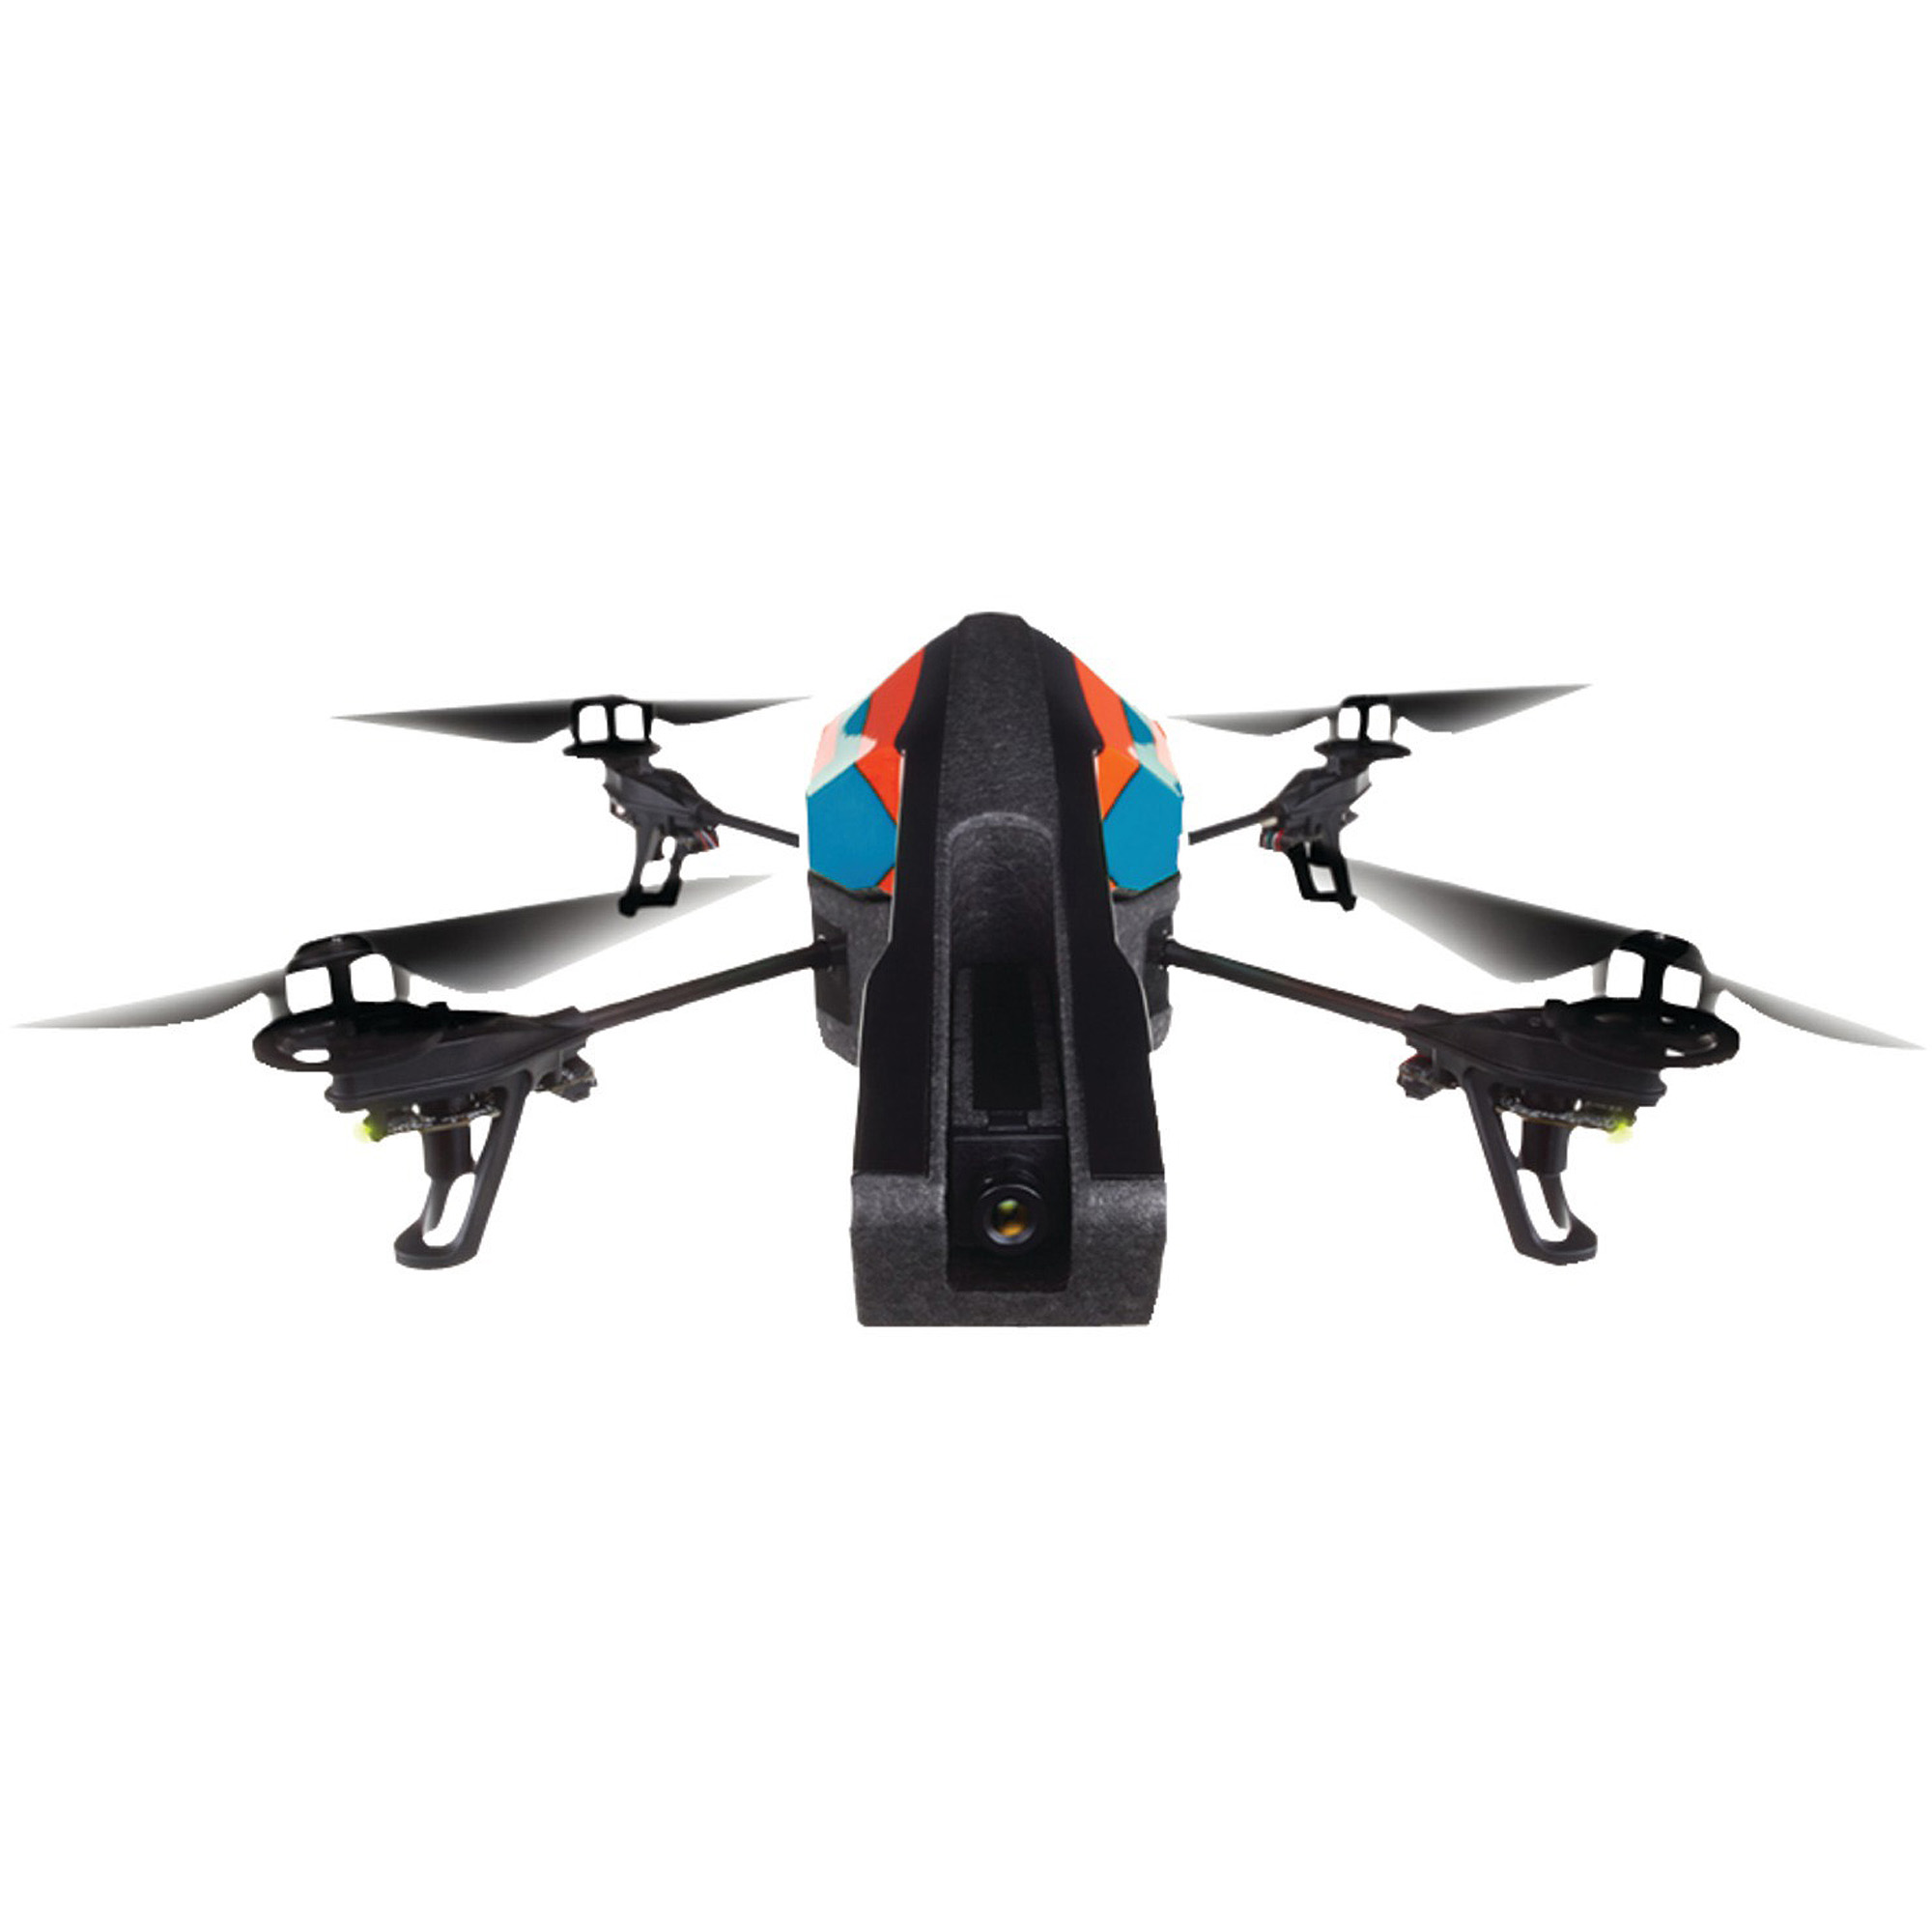 Parrot AR. Drone 2.0 Quadcopter - Orange/Blue